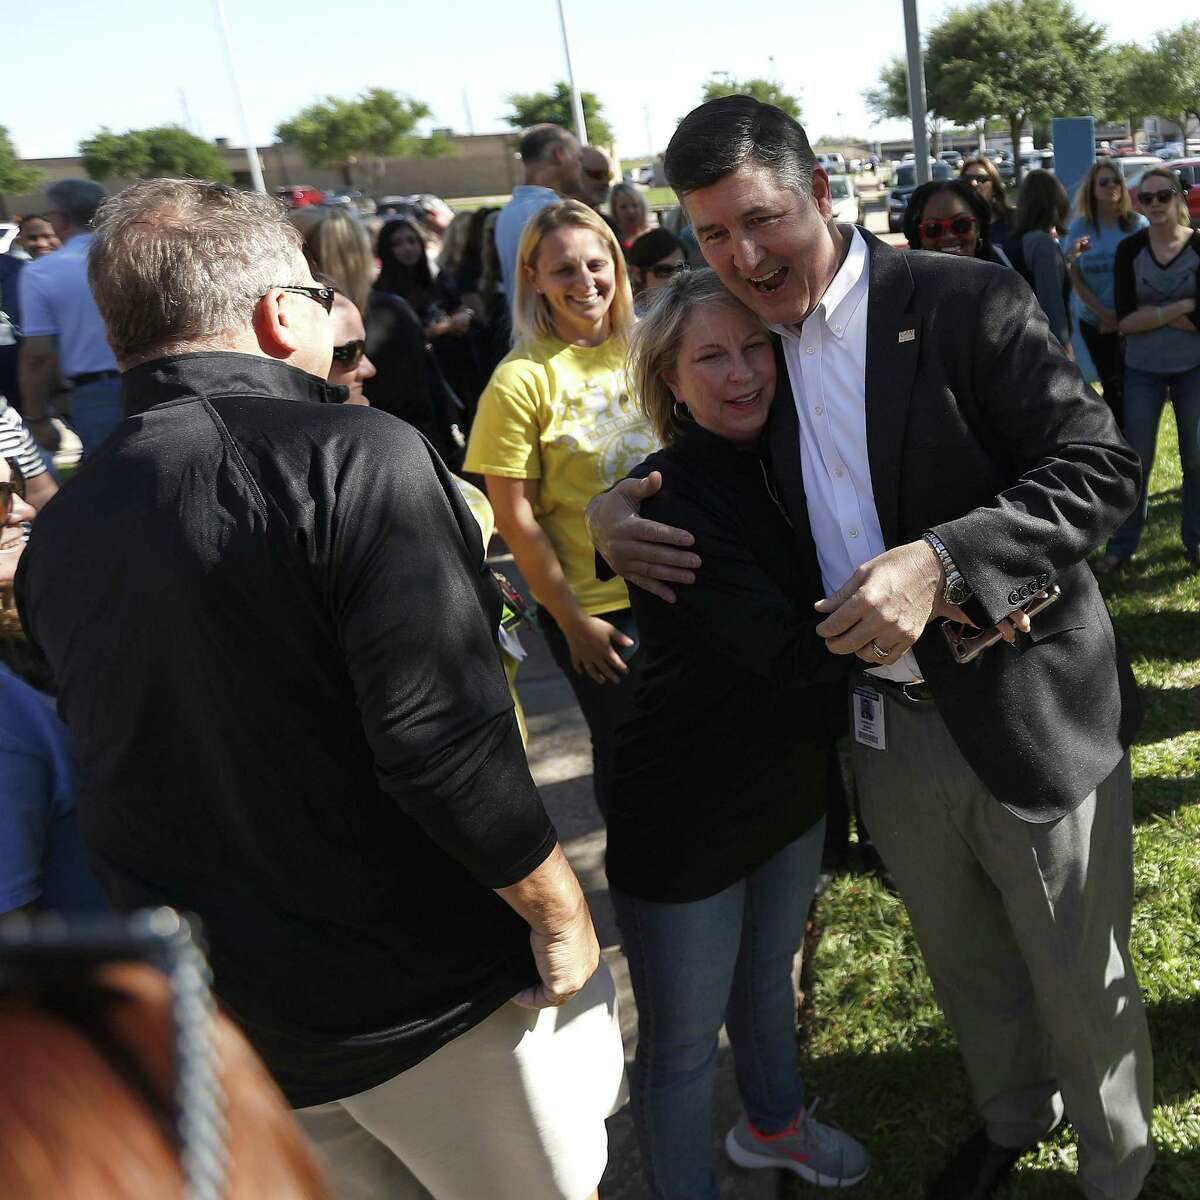 Katy superintendent, Dr. Lance Hindt greets people after he was surrounded by members of the Katy community who have organized a support circle and rally before the Katy ISD Board of Trustees Work Study Meeting, Monday, April 16, 2018, in Katy. Based on the book ?